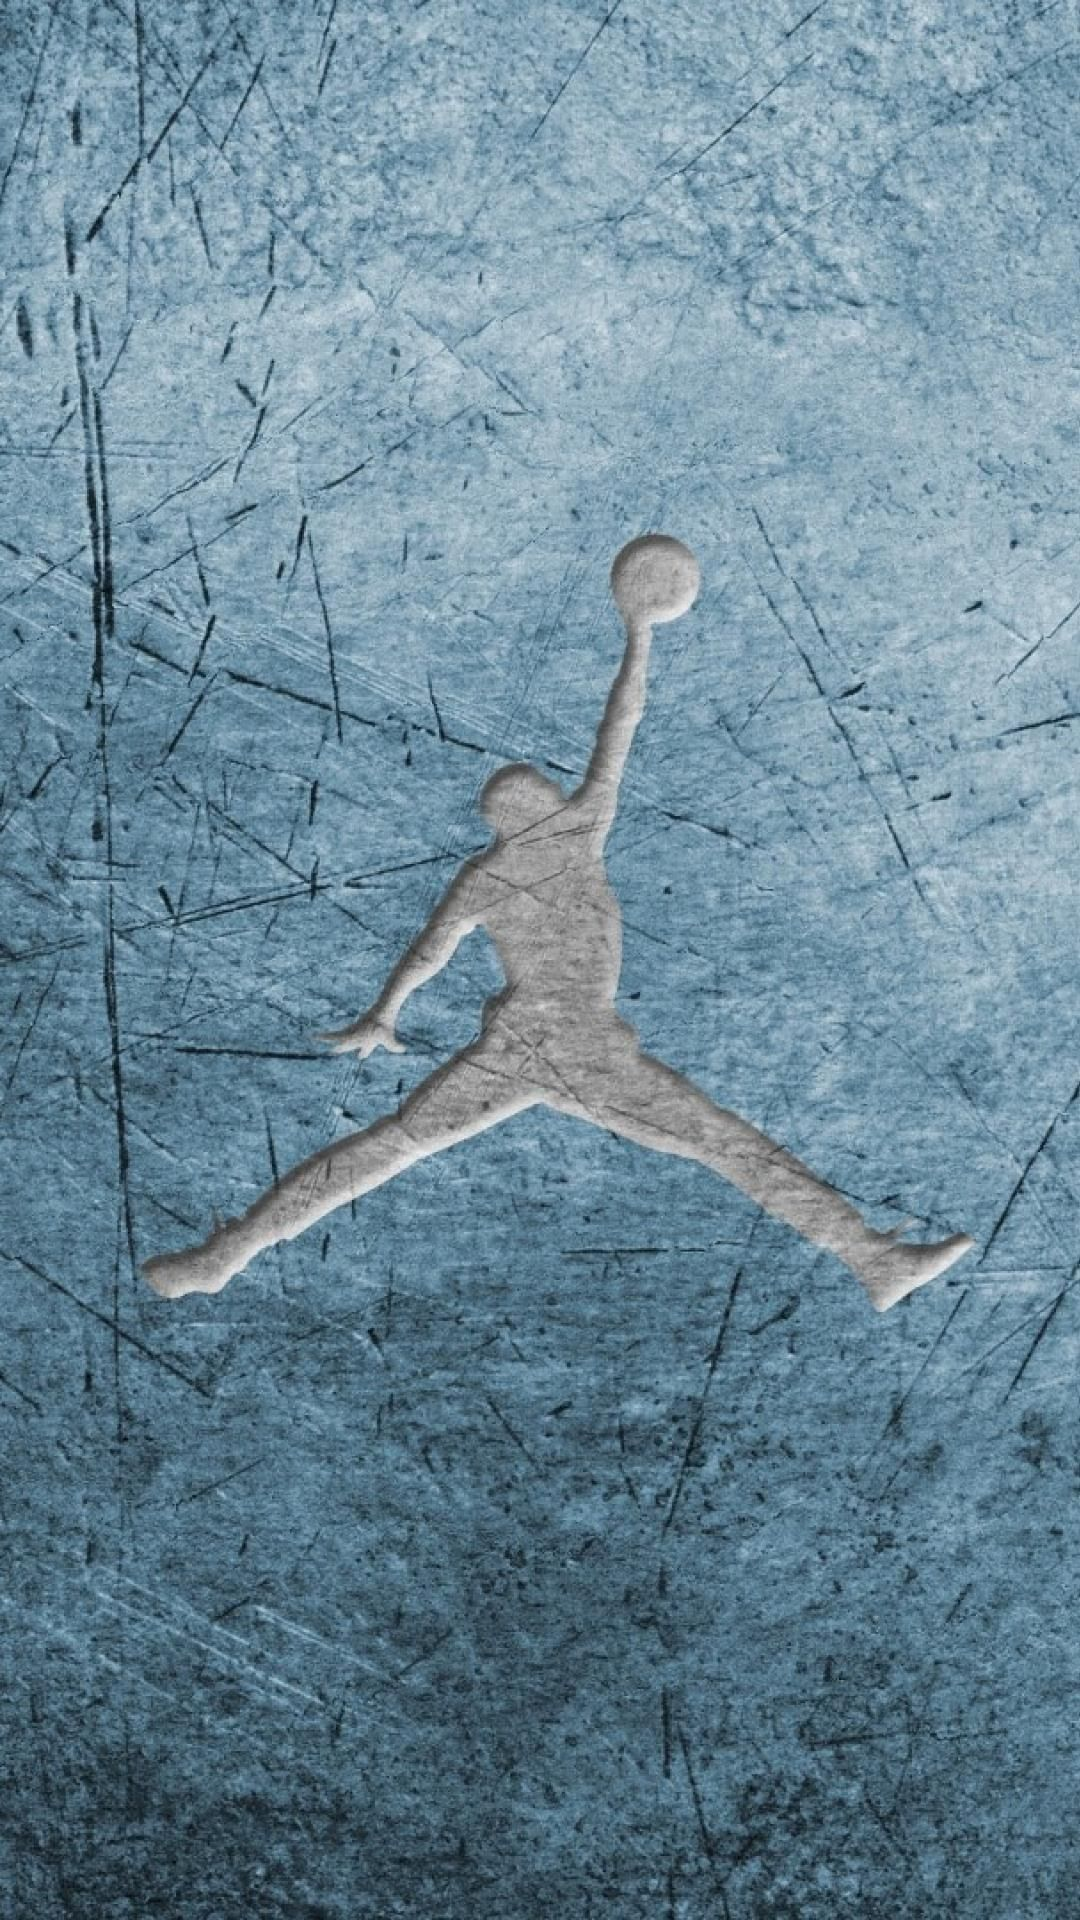 Nike Air Jordan Iphone6s Wallpaper Iphone Wallpaper Jordan Logo Wallpaper Nike Wallpaper Basketball Wallpaper